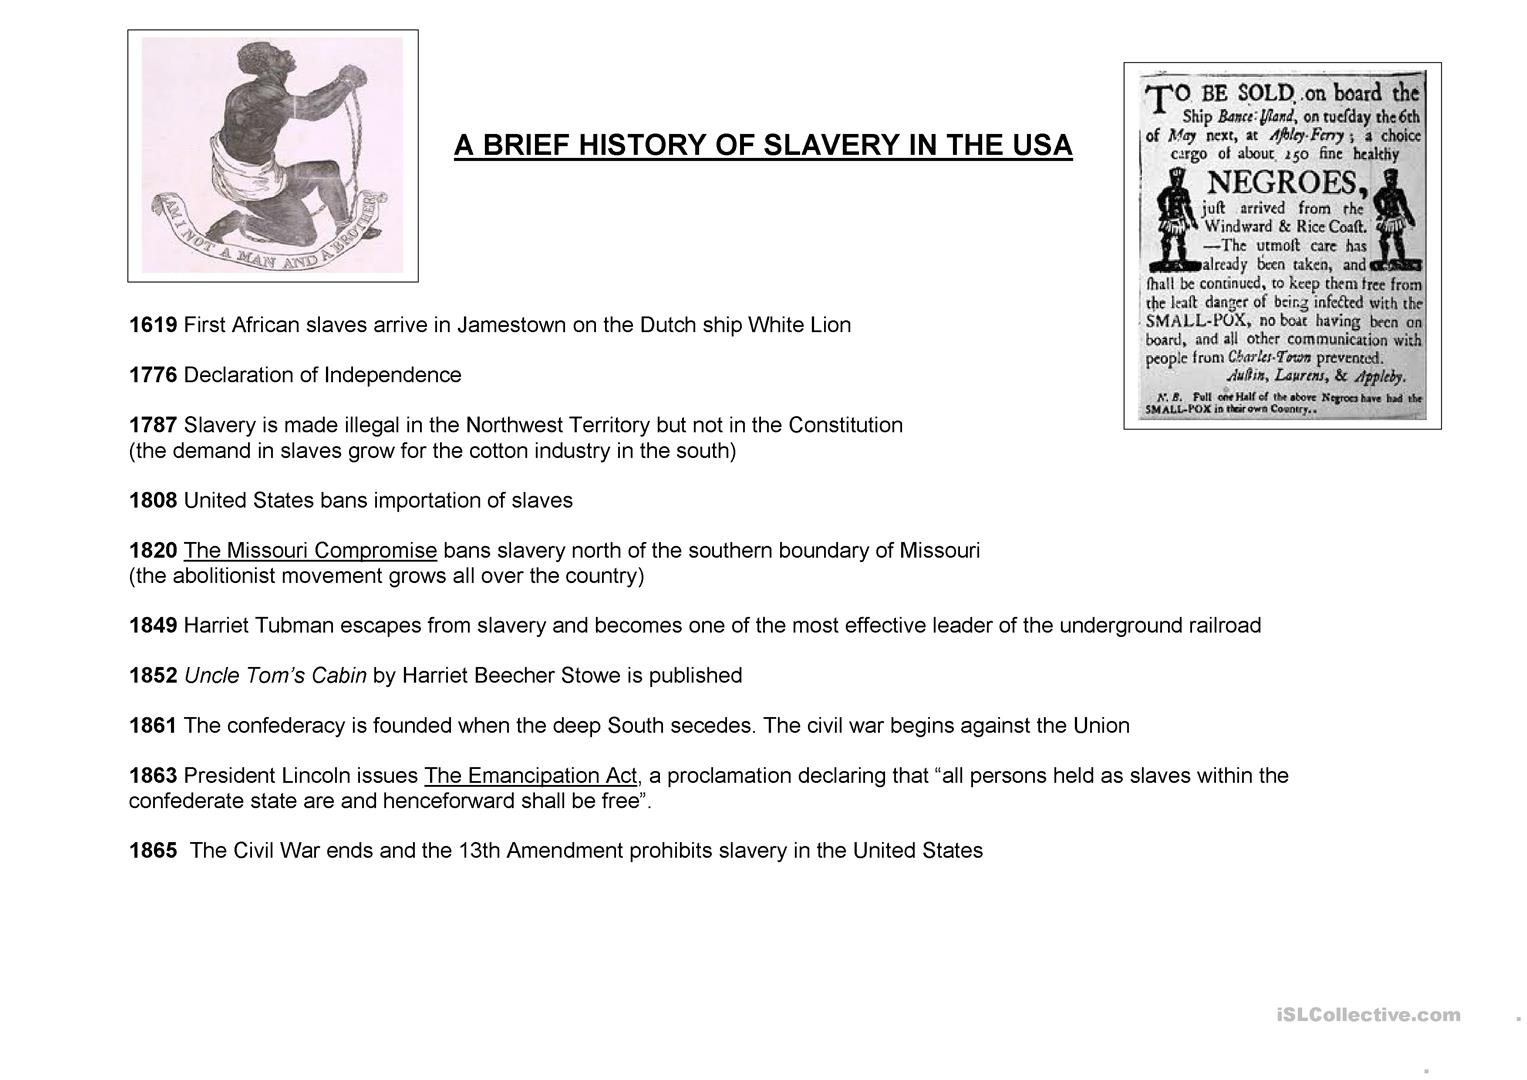 A Brief History Of Slavery In The Usa Worksheet